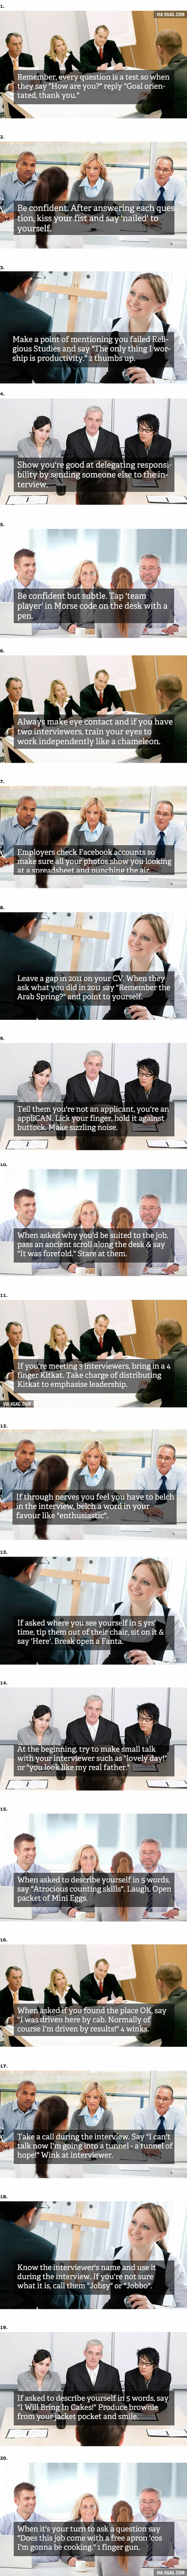 20 essential job interview tips 9gag 20 essential job interview tips